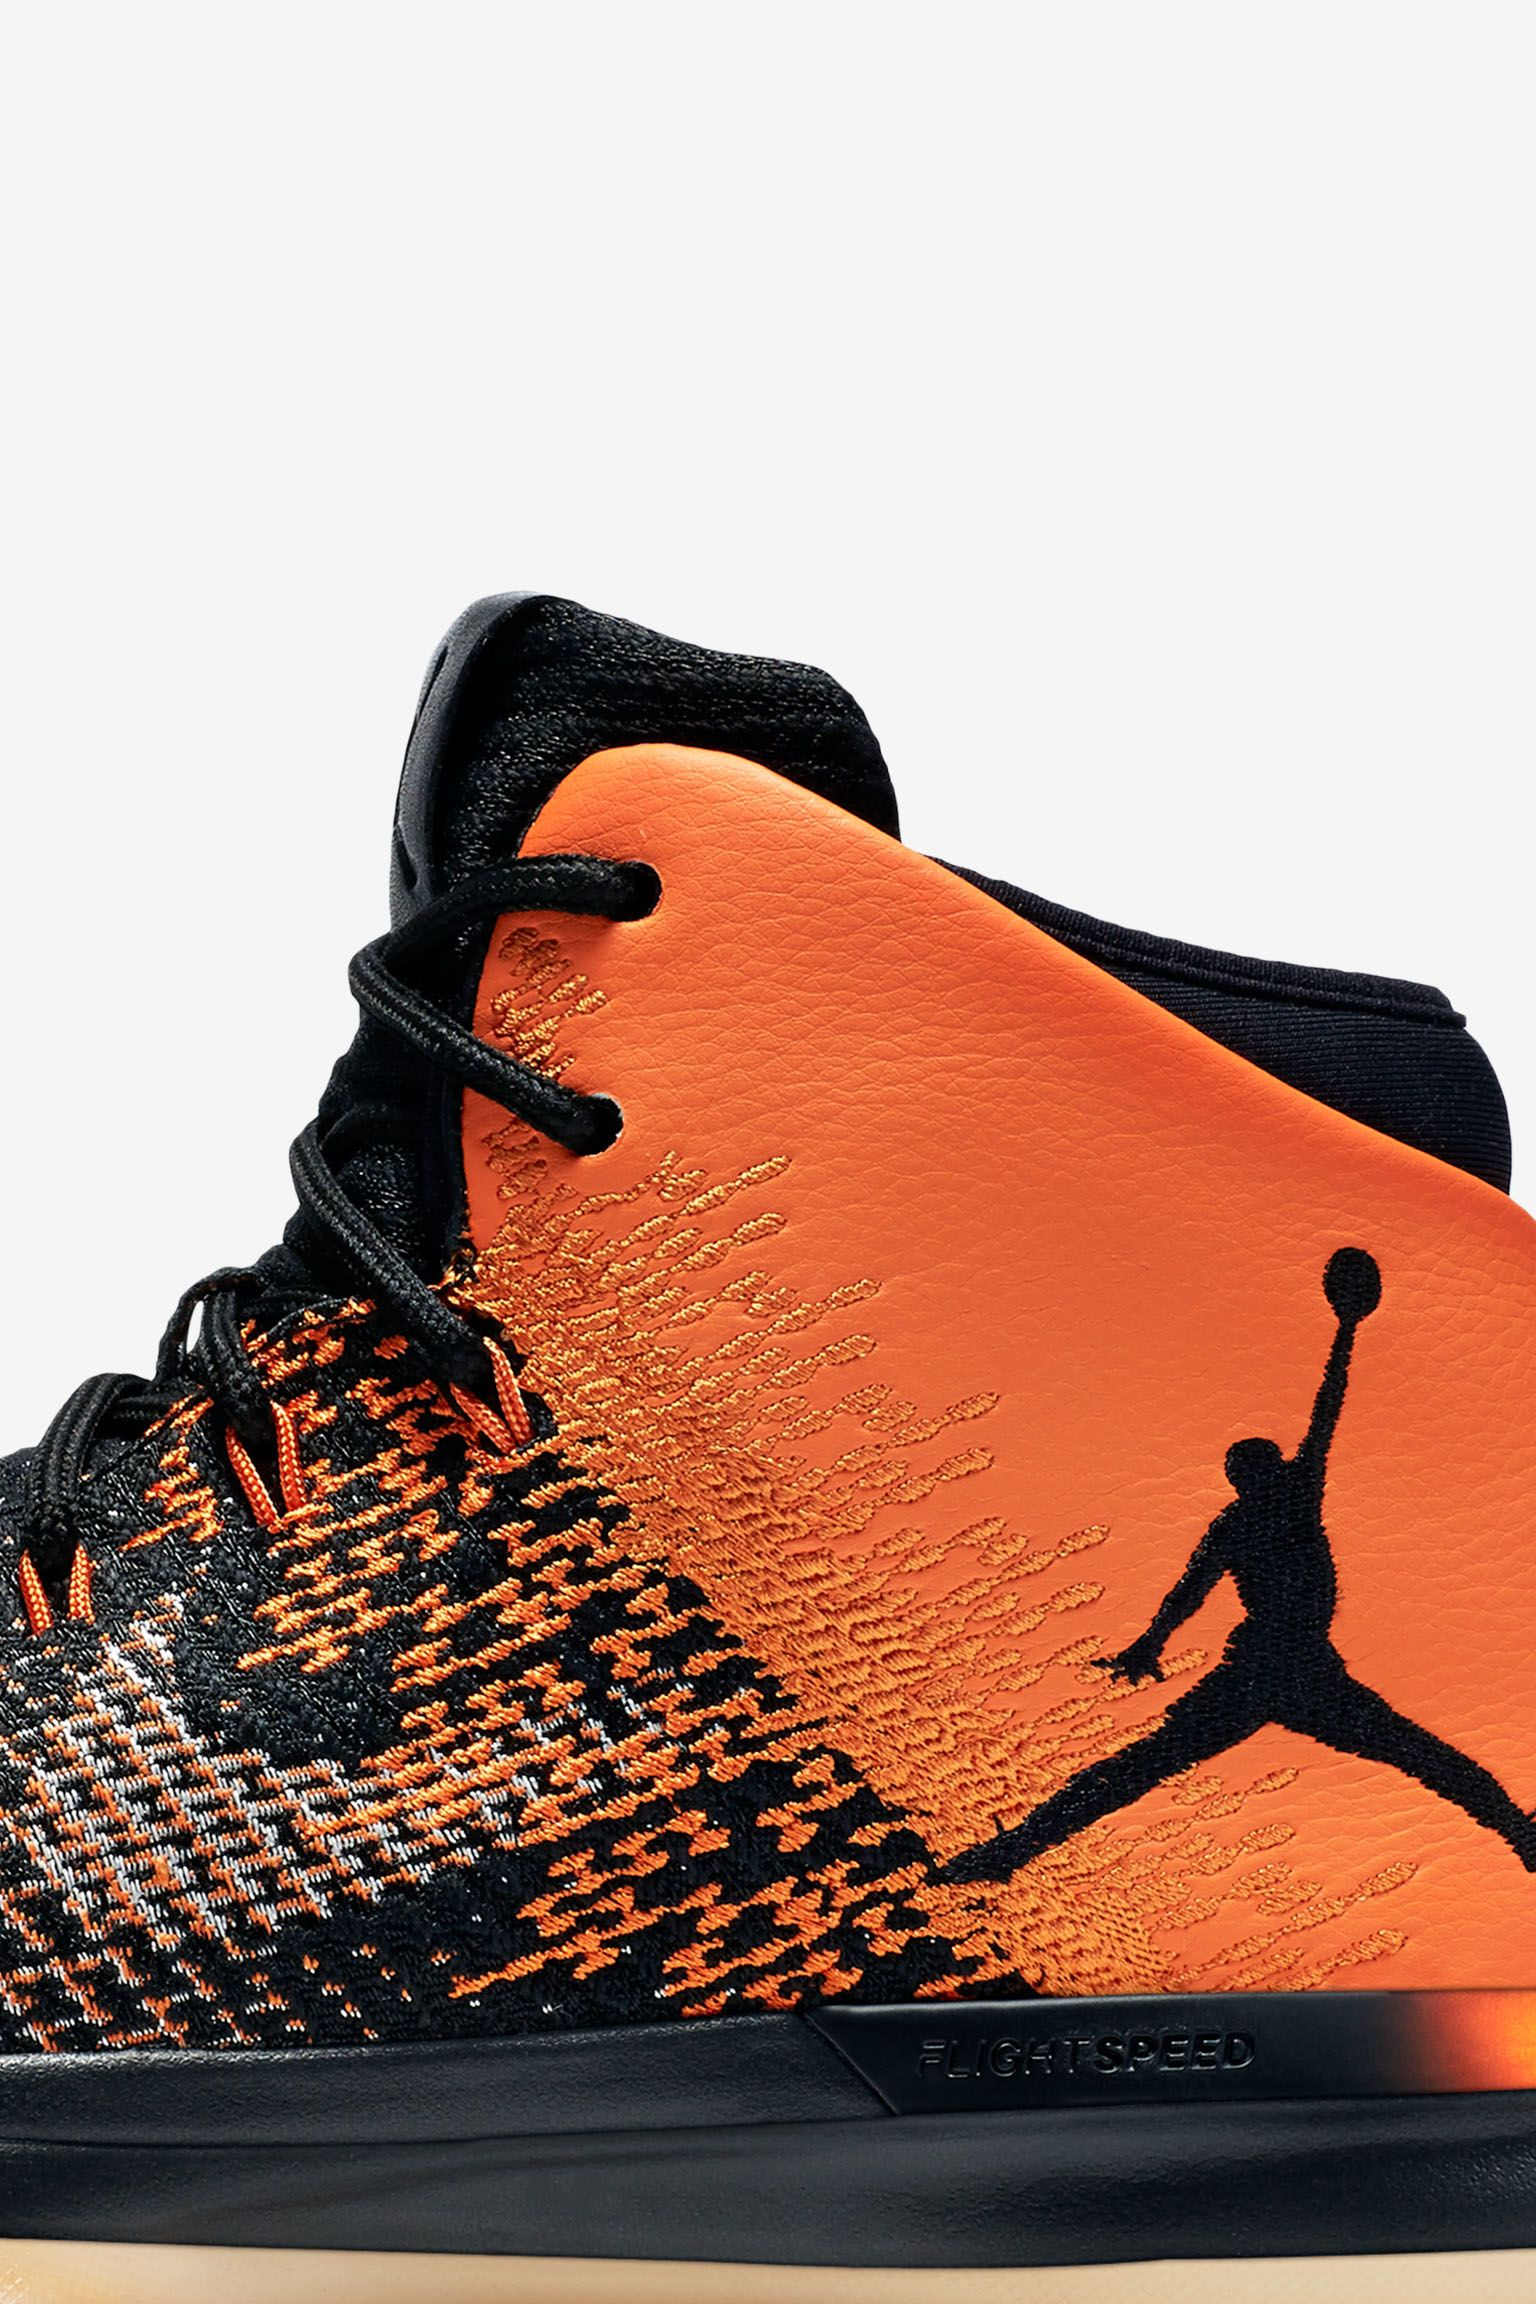 Air Jordan 31 'Shattered Backboard' Release Date